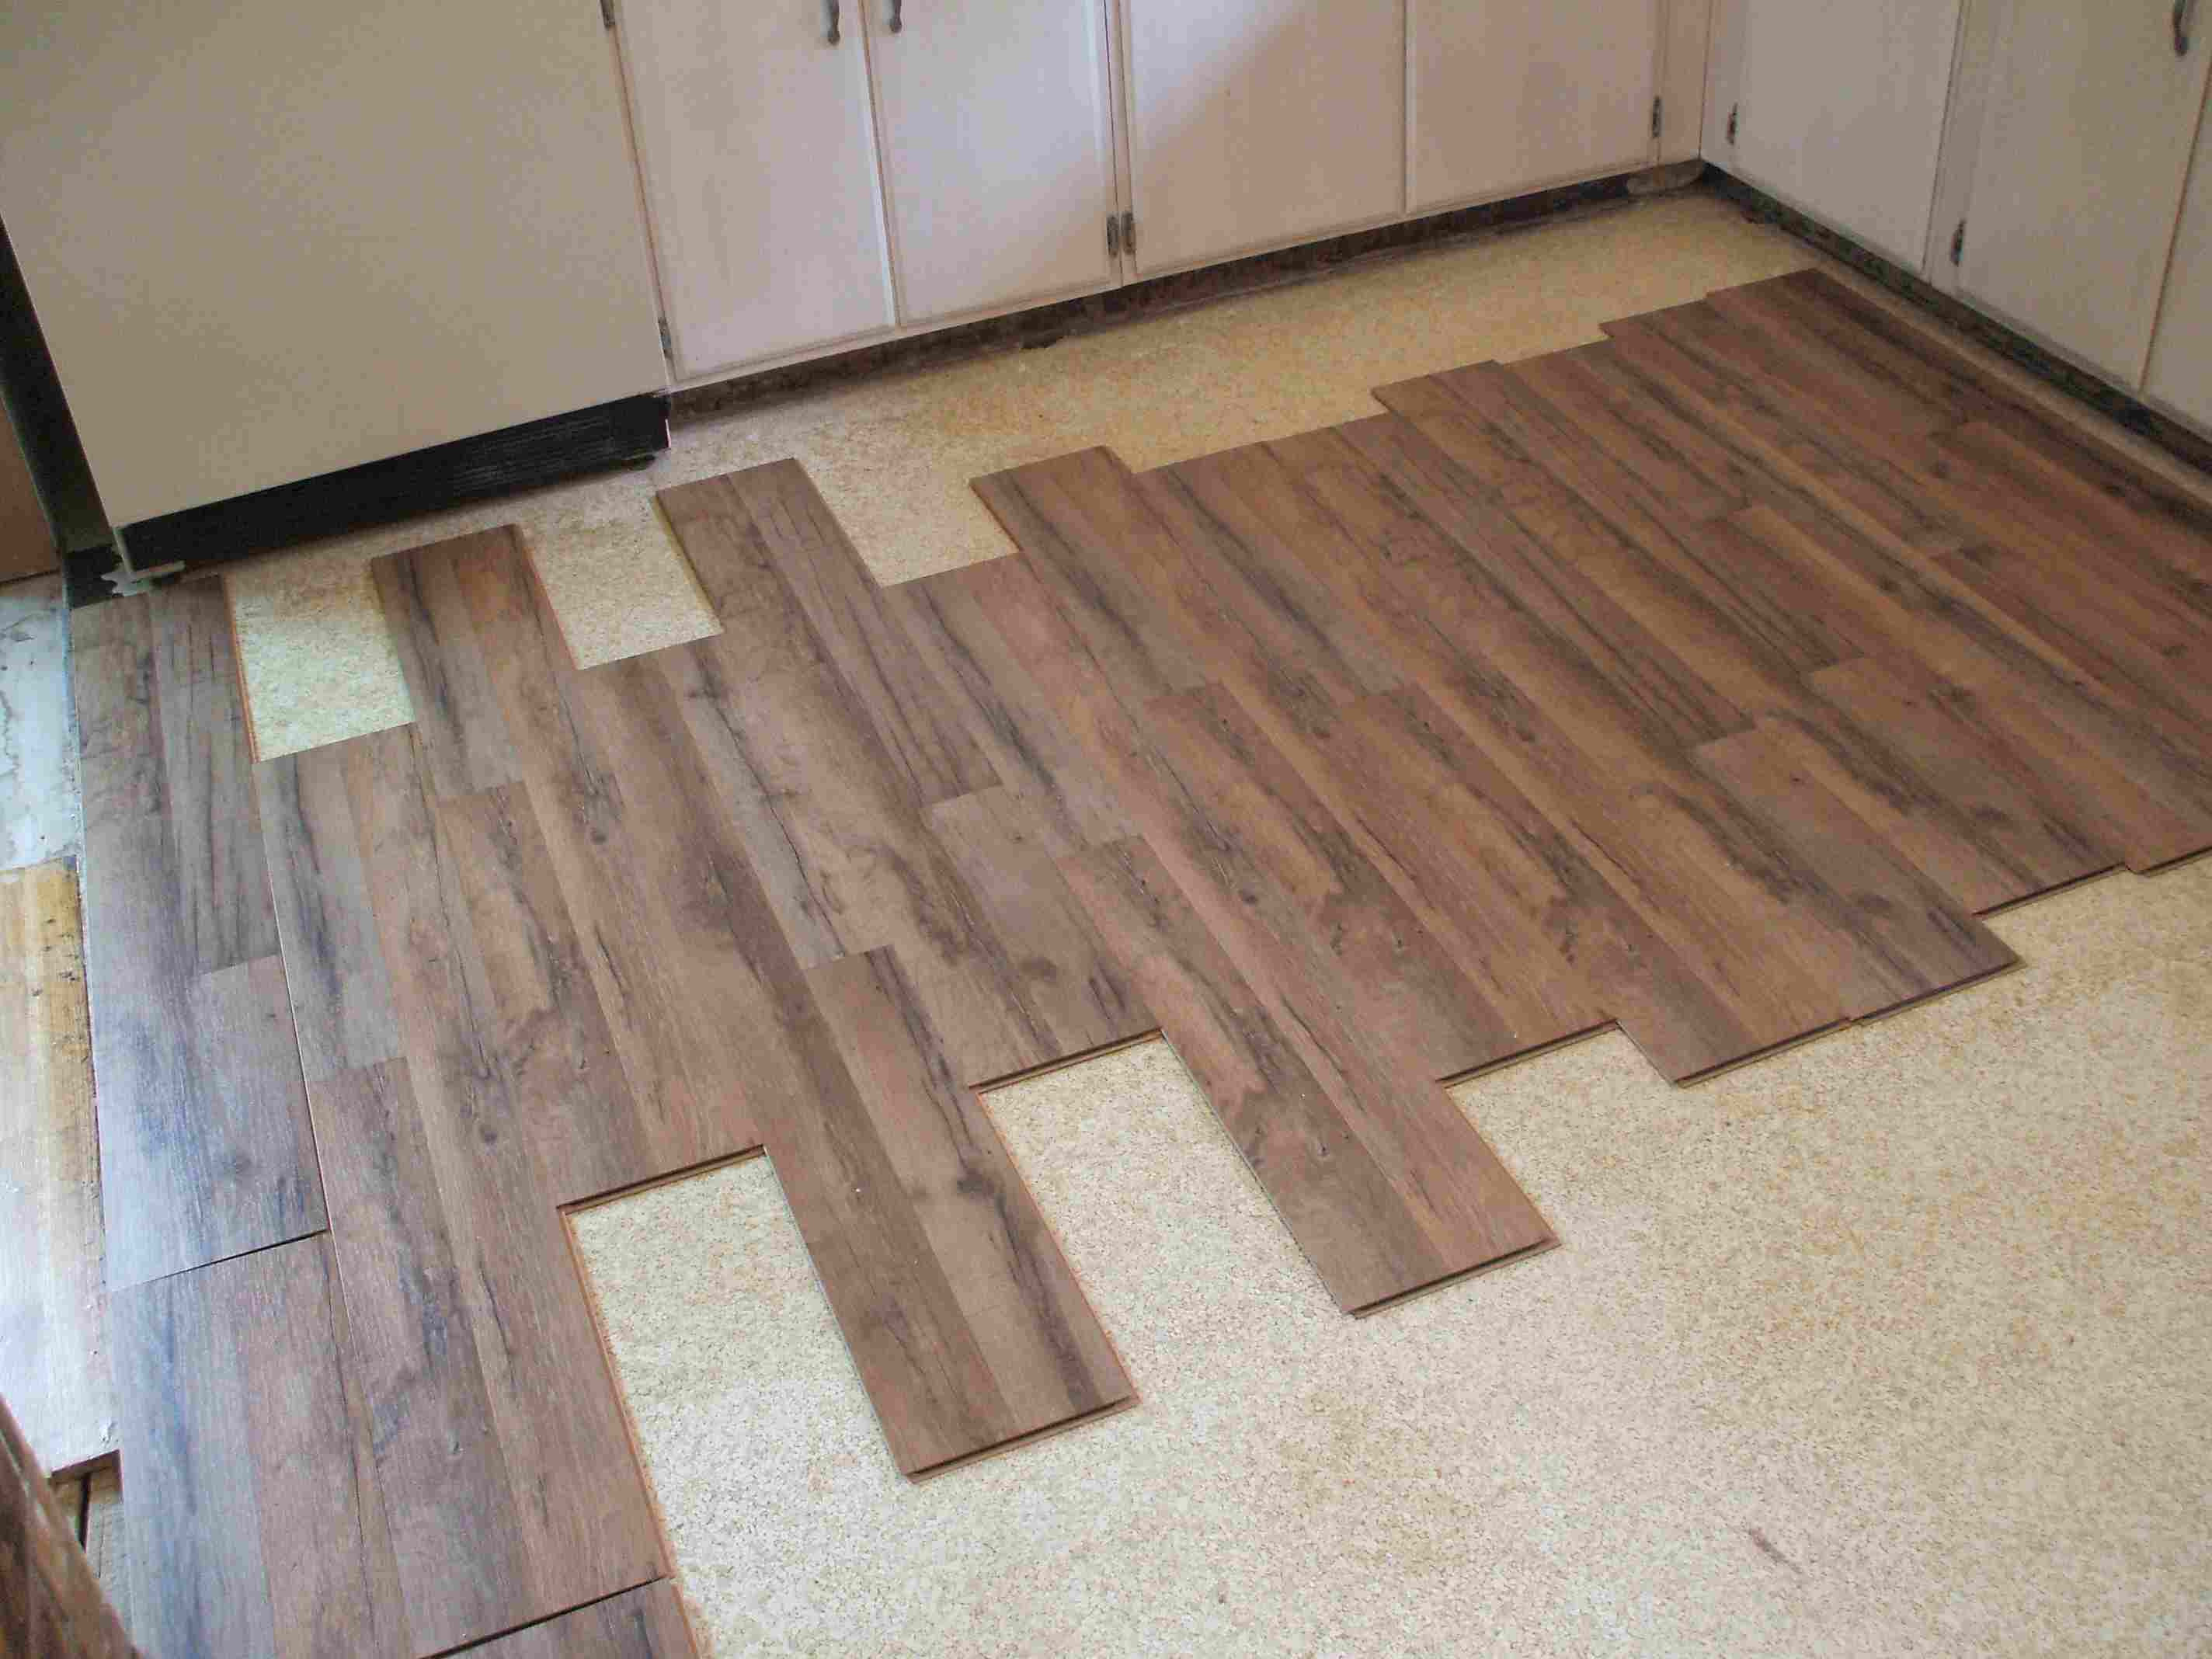 hardwood floor installation methods of laminate flooring installation made easy throughout installing laminate eyeballing layout 56a49d075f9b58b7d0d7d693 jpg